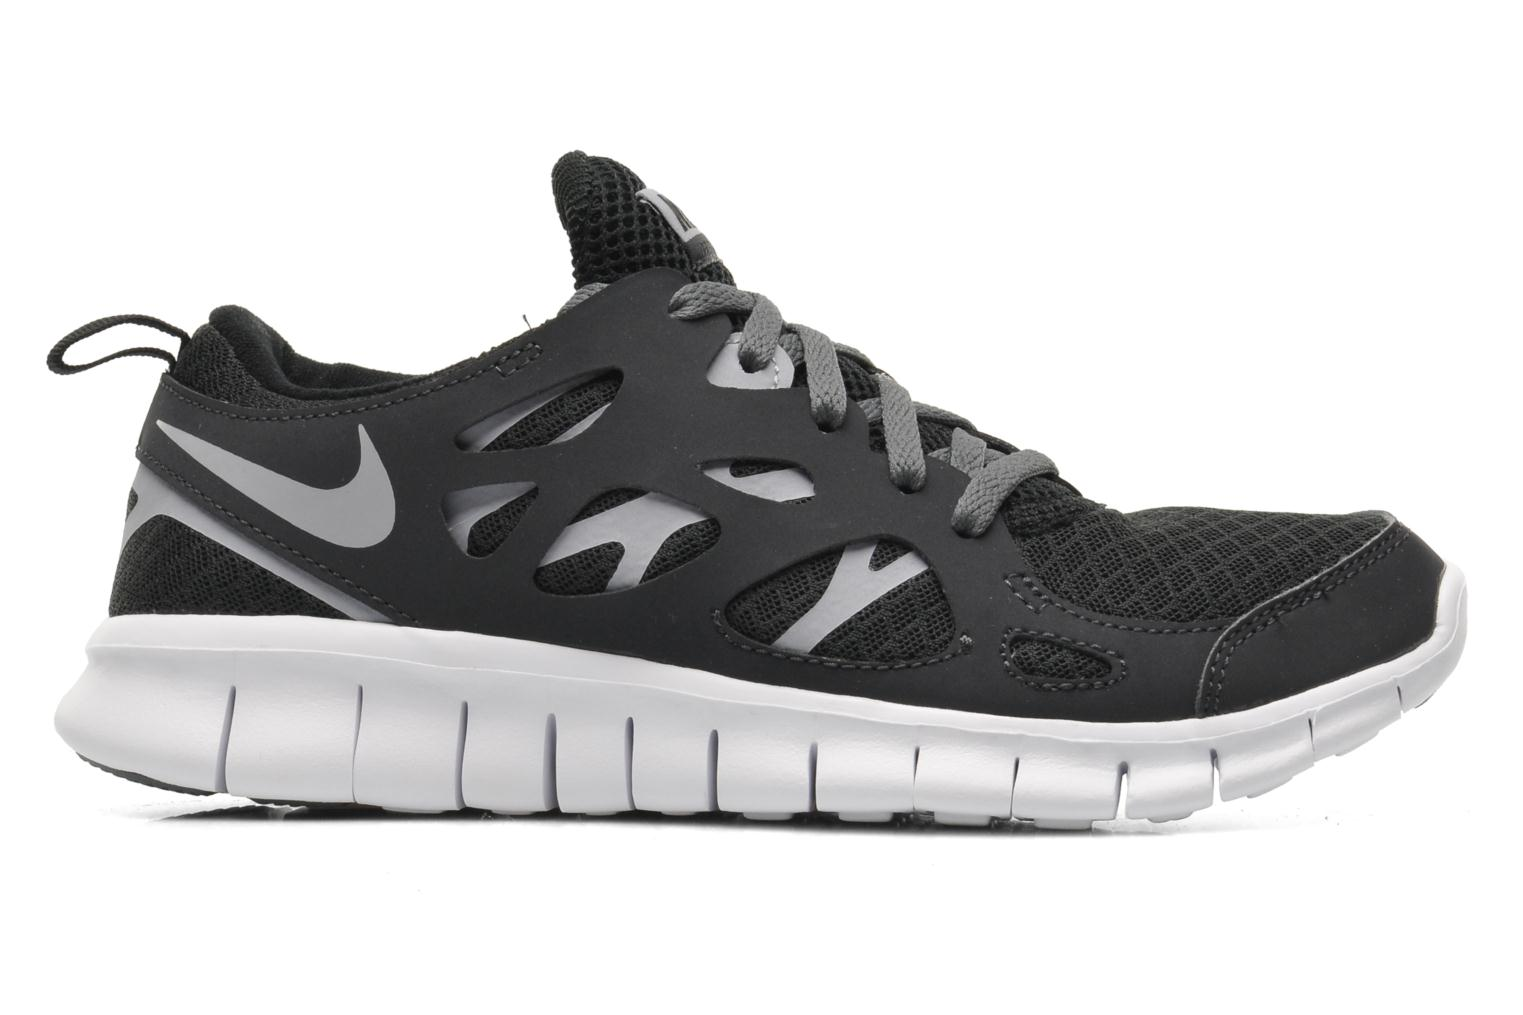 NIKE FREE RUN 2 (GS) BLACK/WOLF GREY-WHITE-DRK GREY